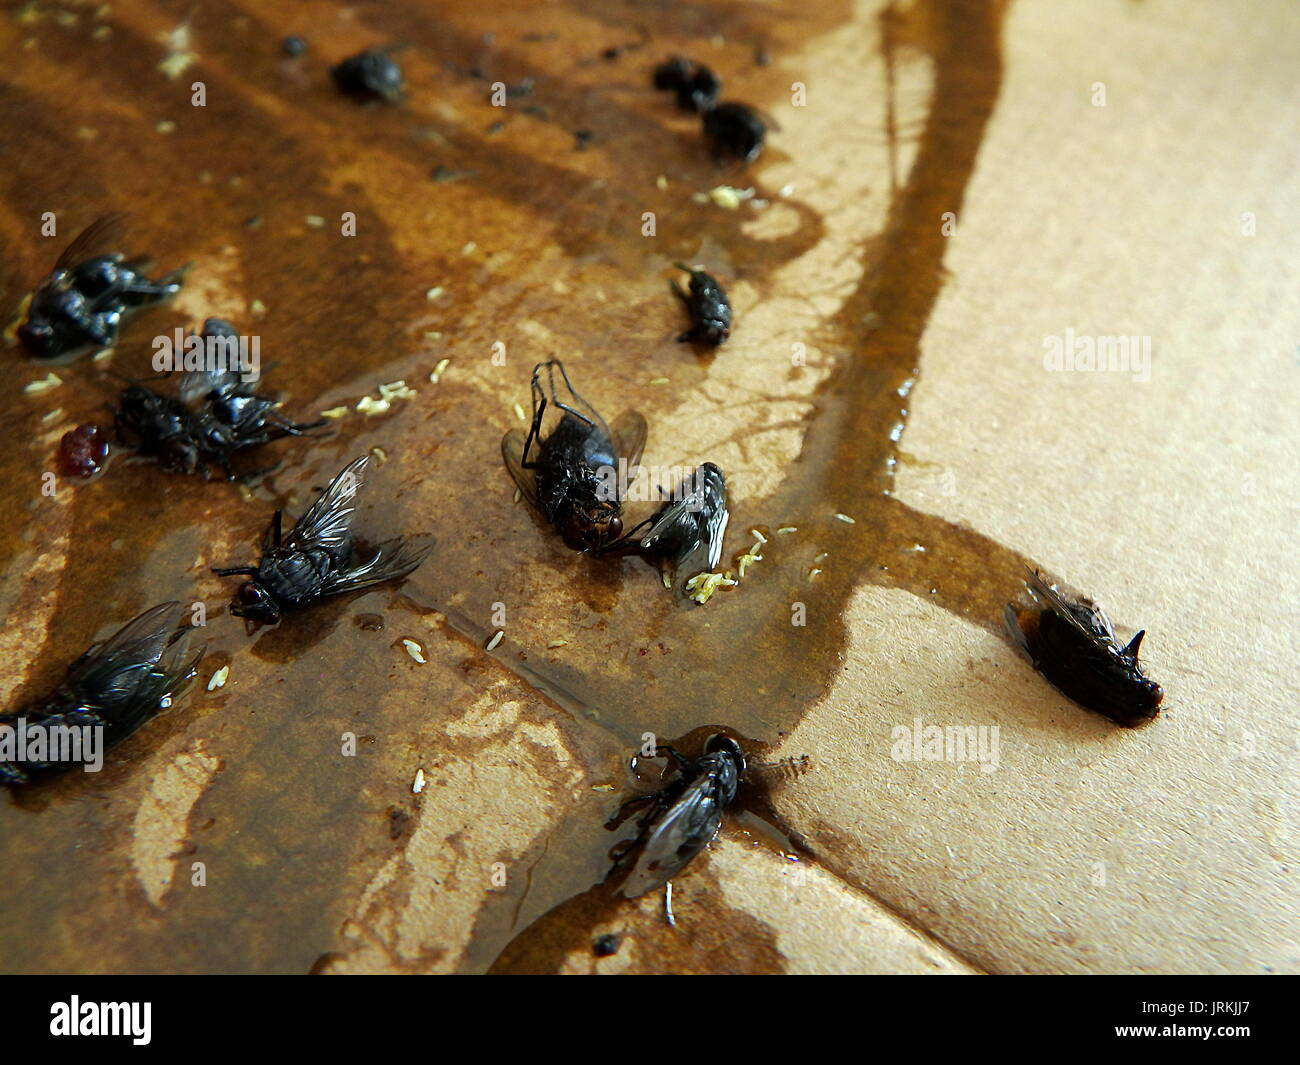 pheromone paper Pheromone that causes clumping or clustering behavior in a species and brings individuals into a closer proximity is called aggregation pheromone this paper presents a novel method for image segmentation considering the aggregation behavior of ants.